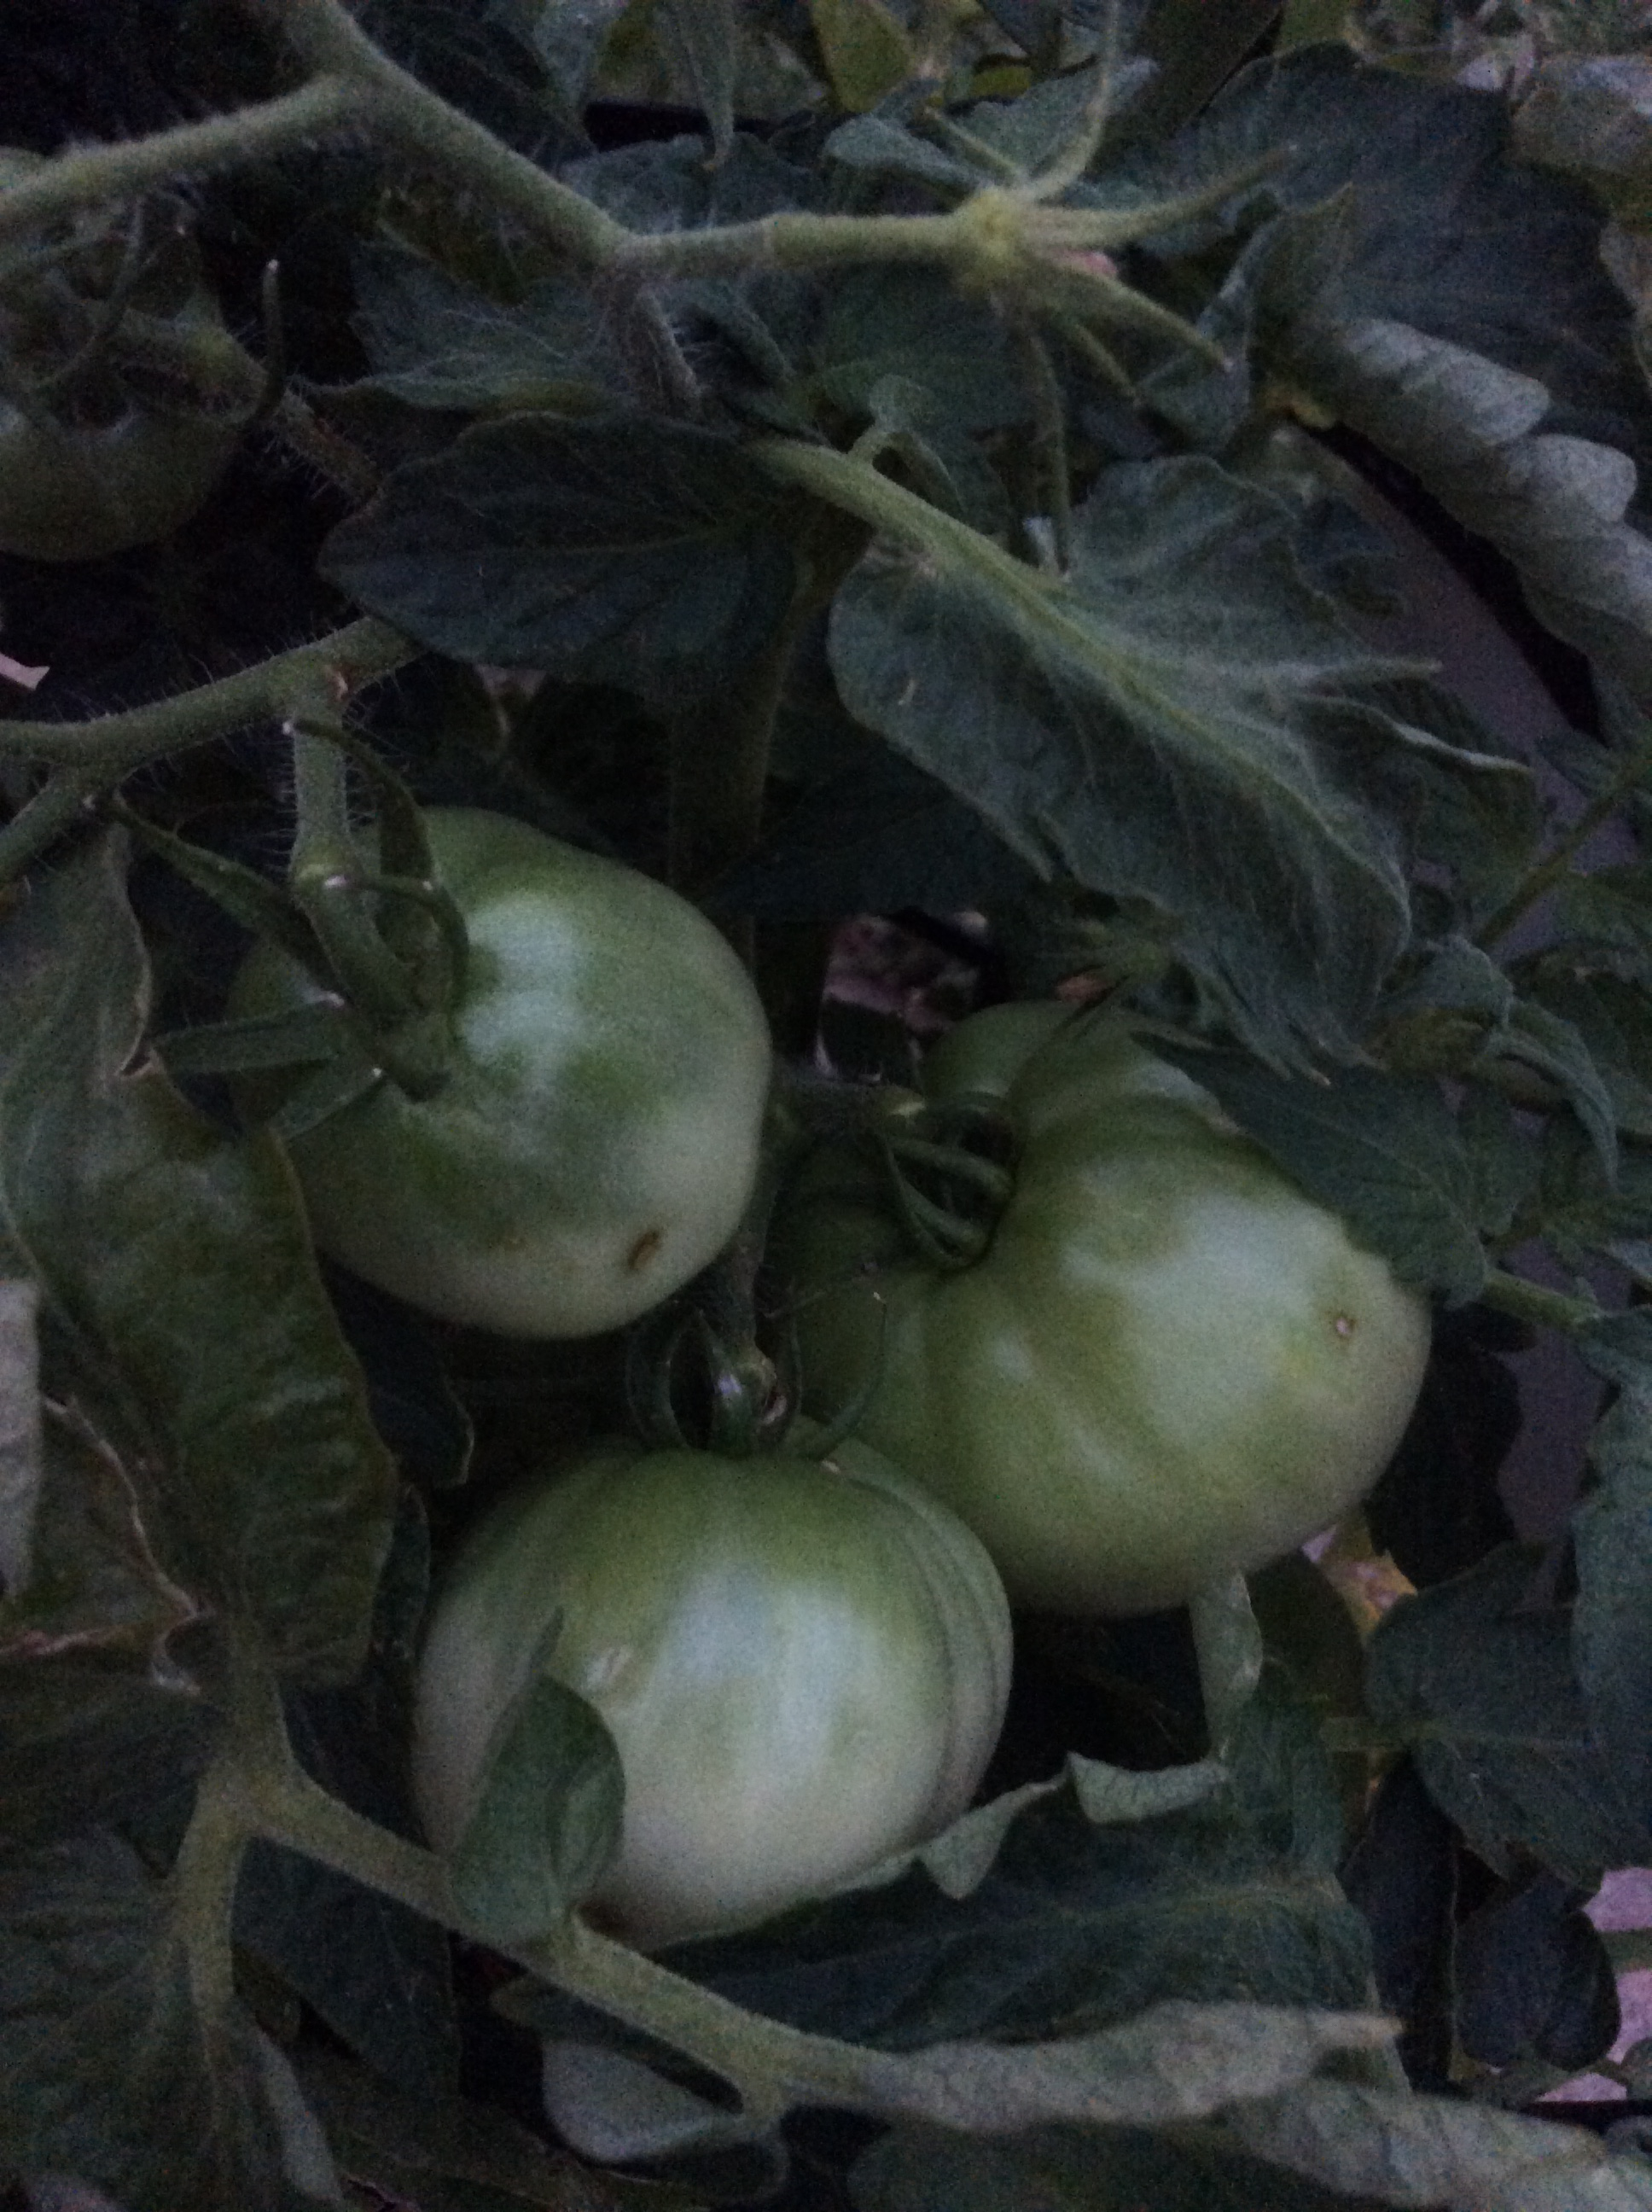 Little green tomatoes